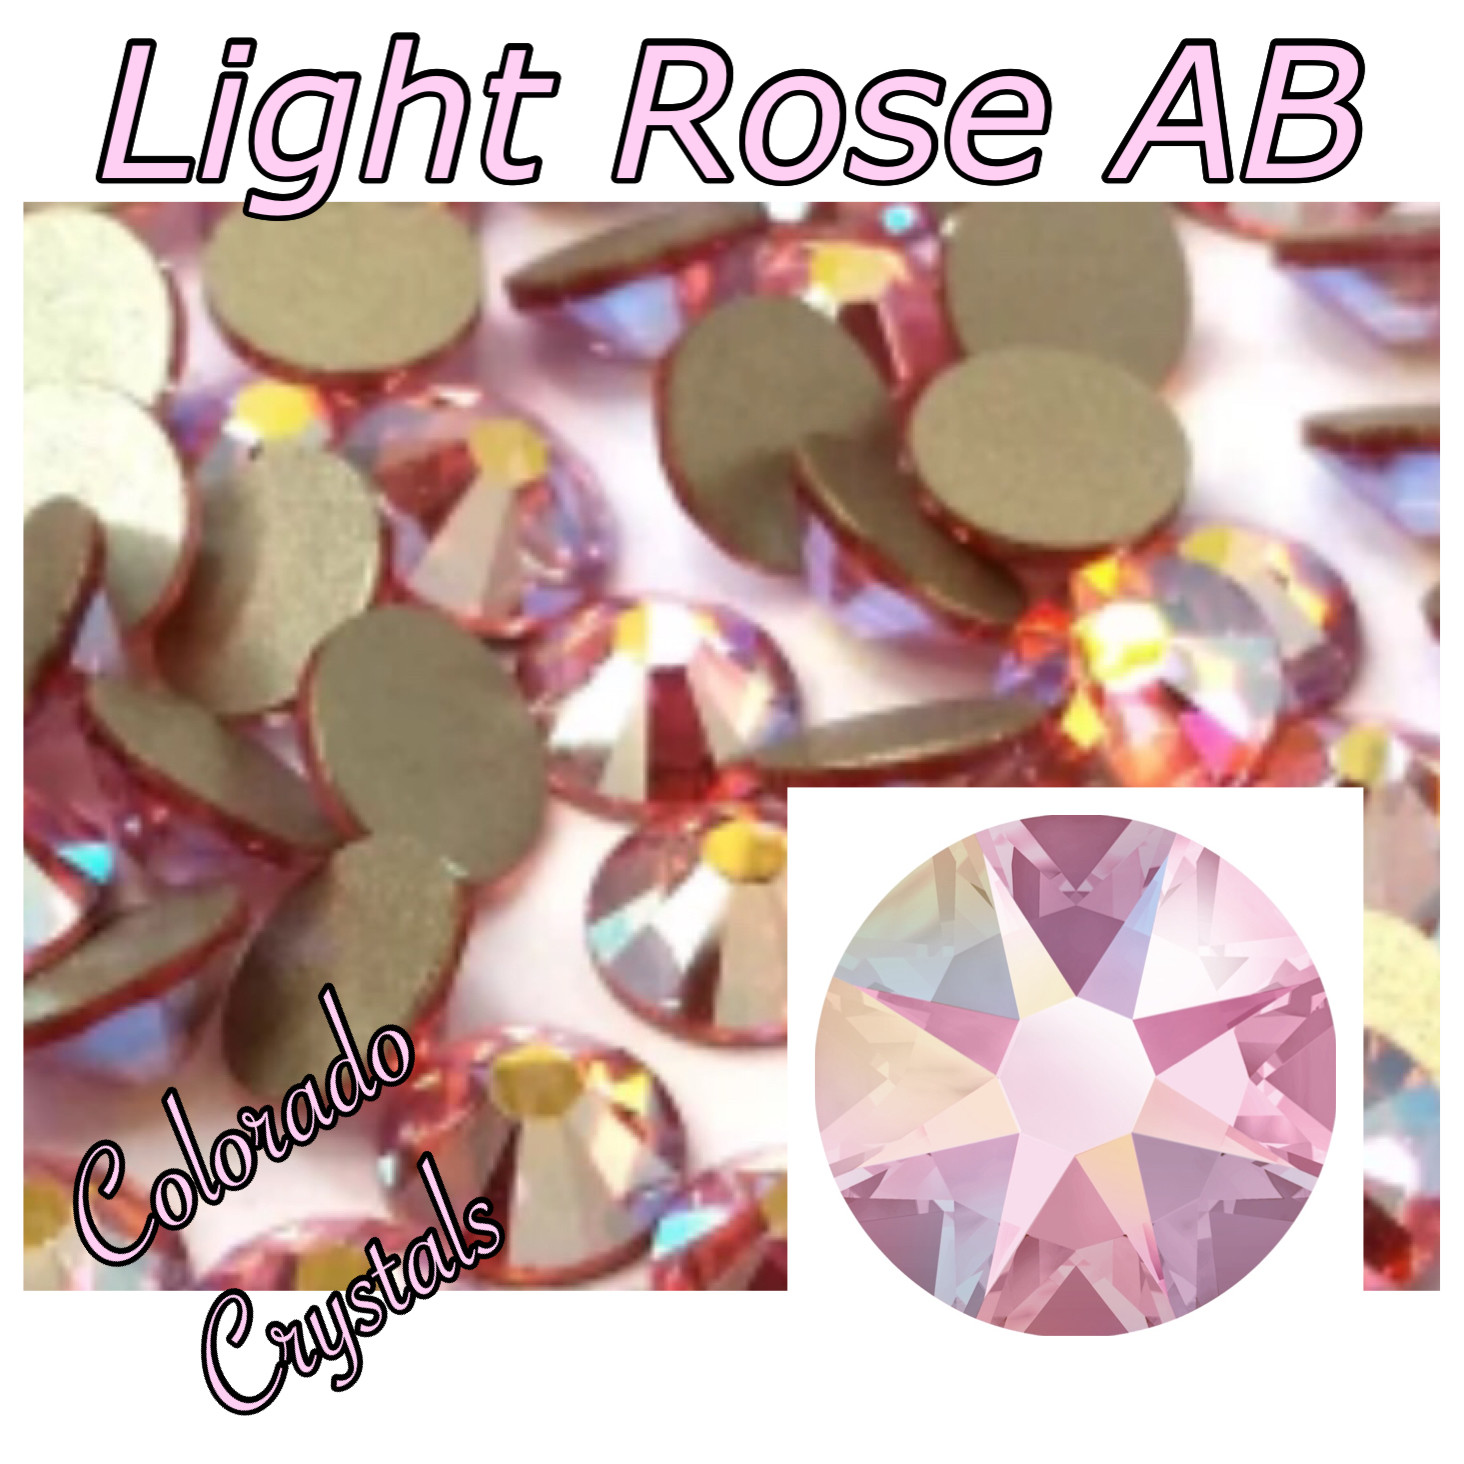 Light Rose AB 5ss 2058 Limited